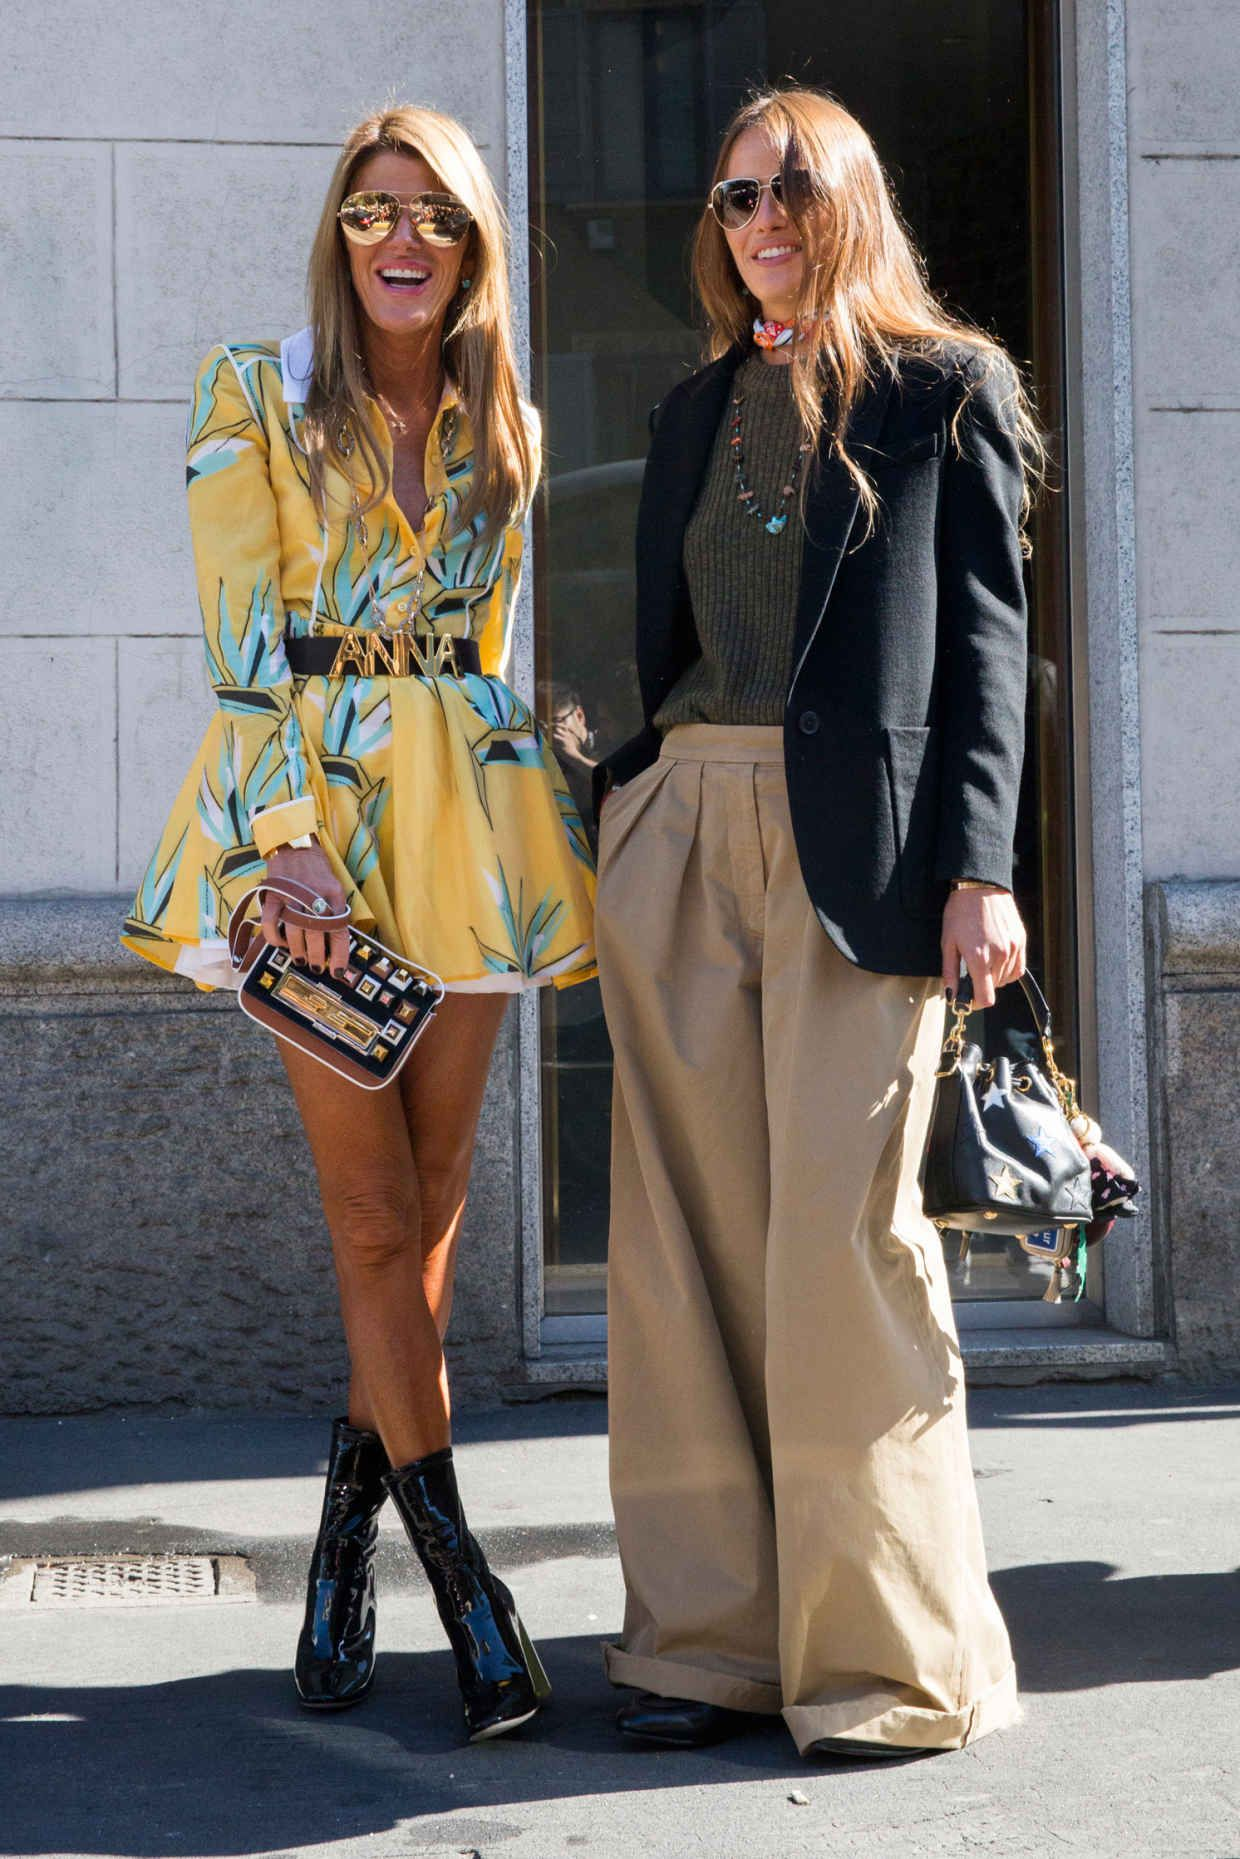 Anna dello Russo in Fendi and Carlota Oddi. Photo: Imaxtree